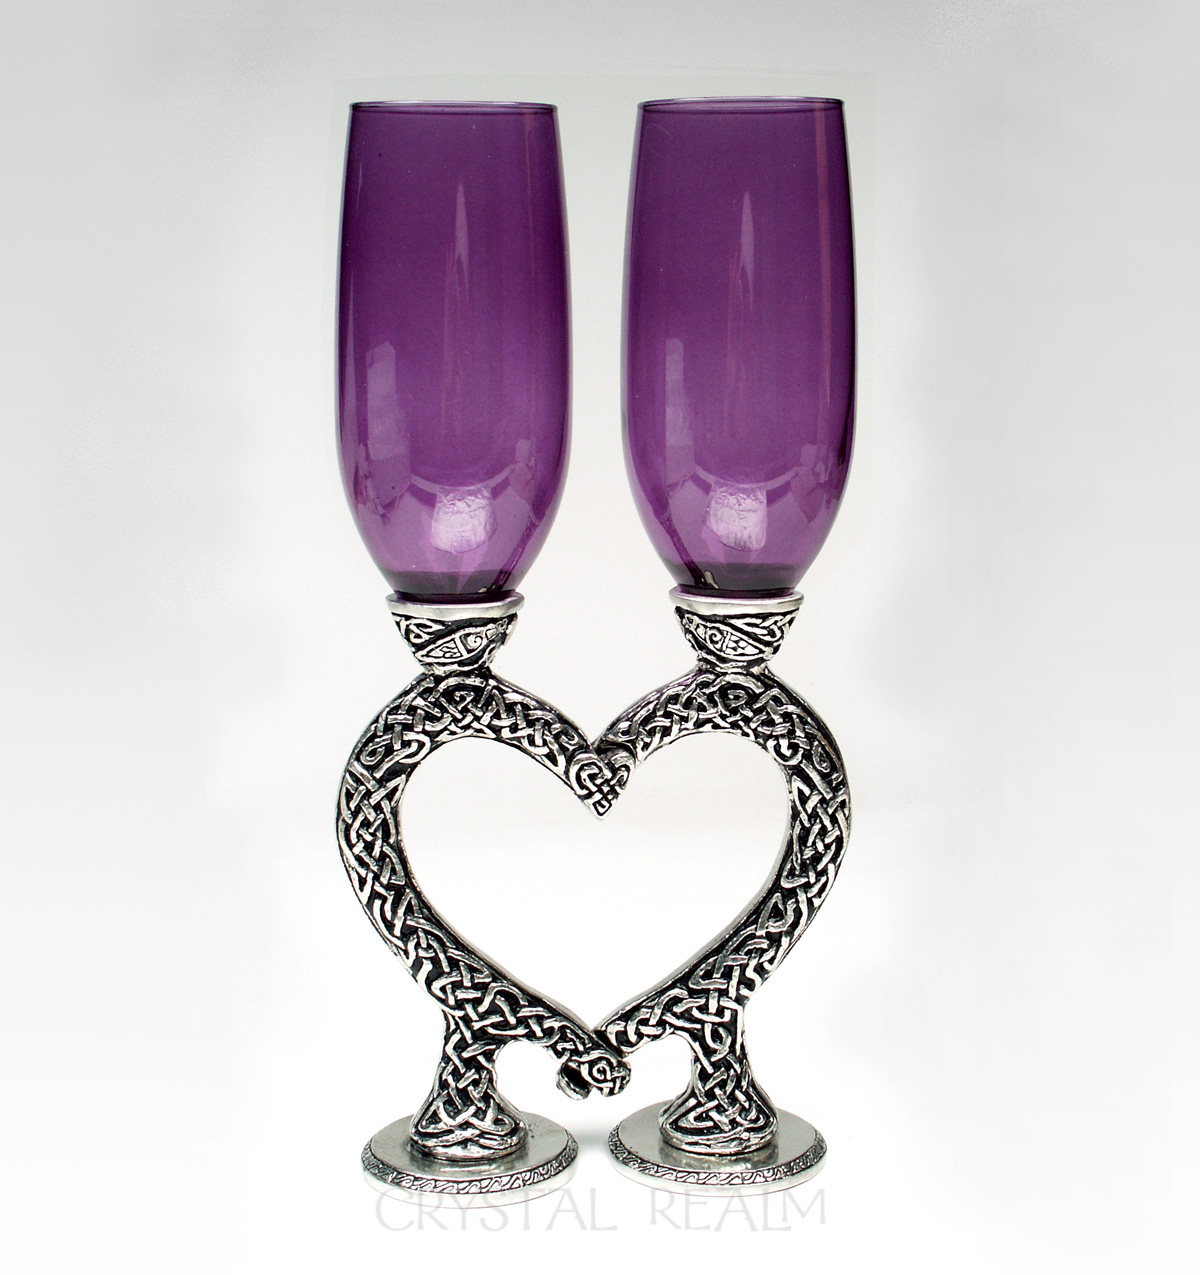 Celtic purple champagne glasses with knotwork heart stems